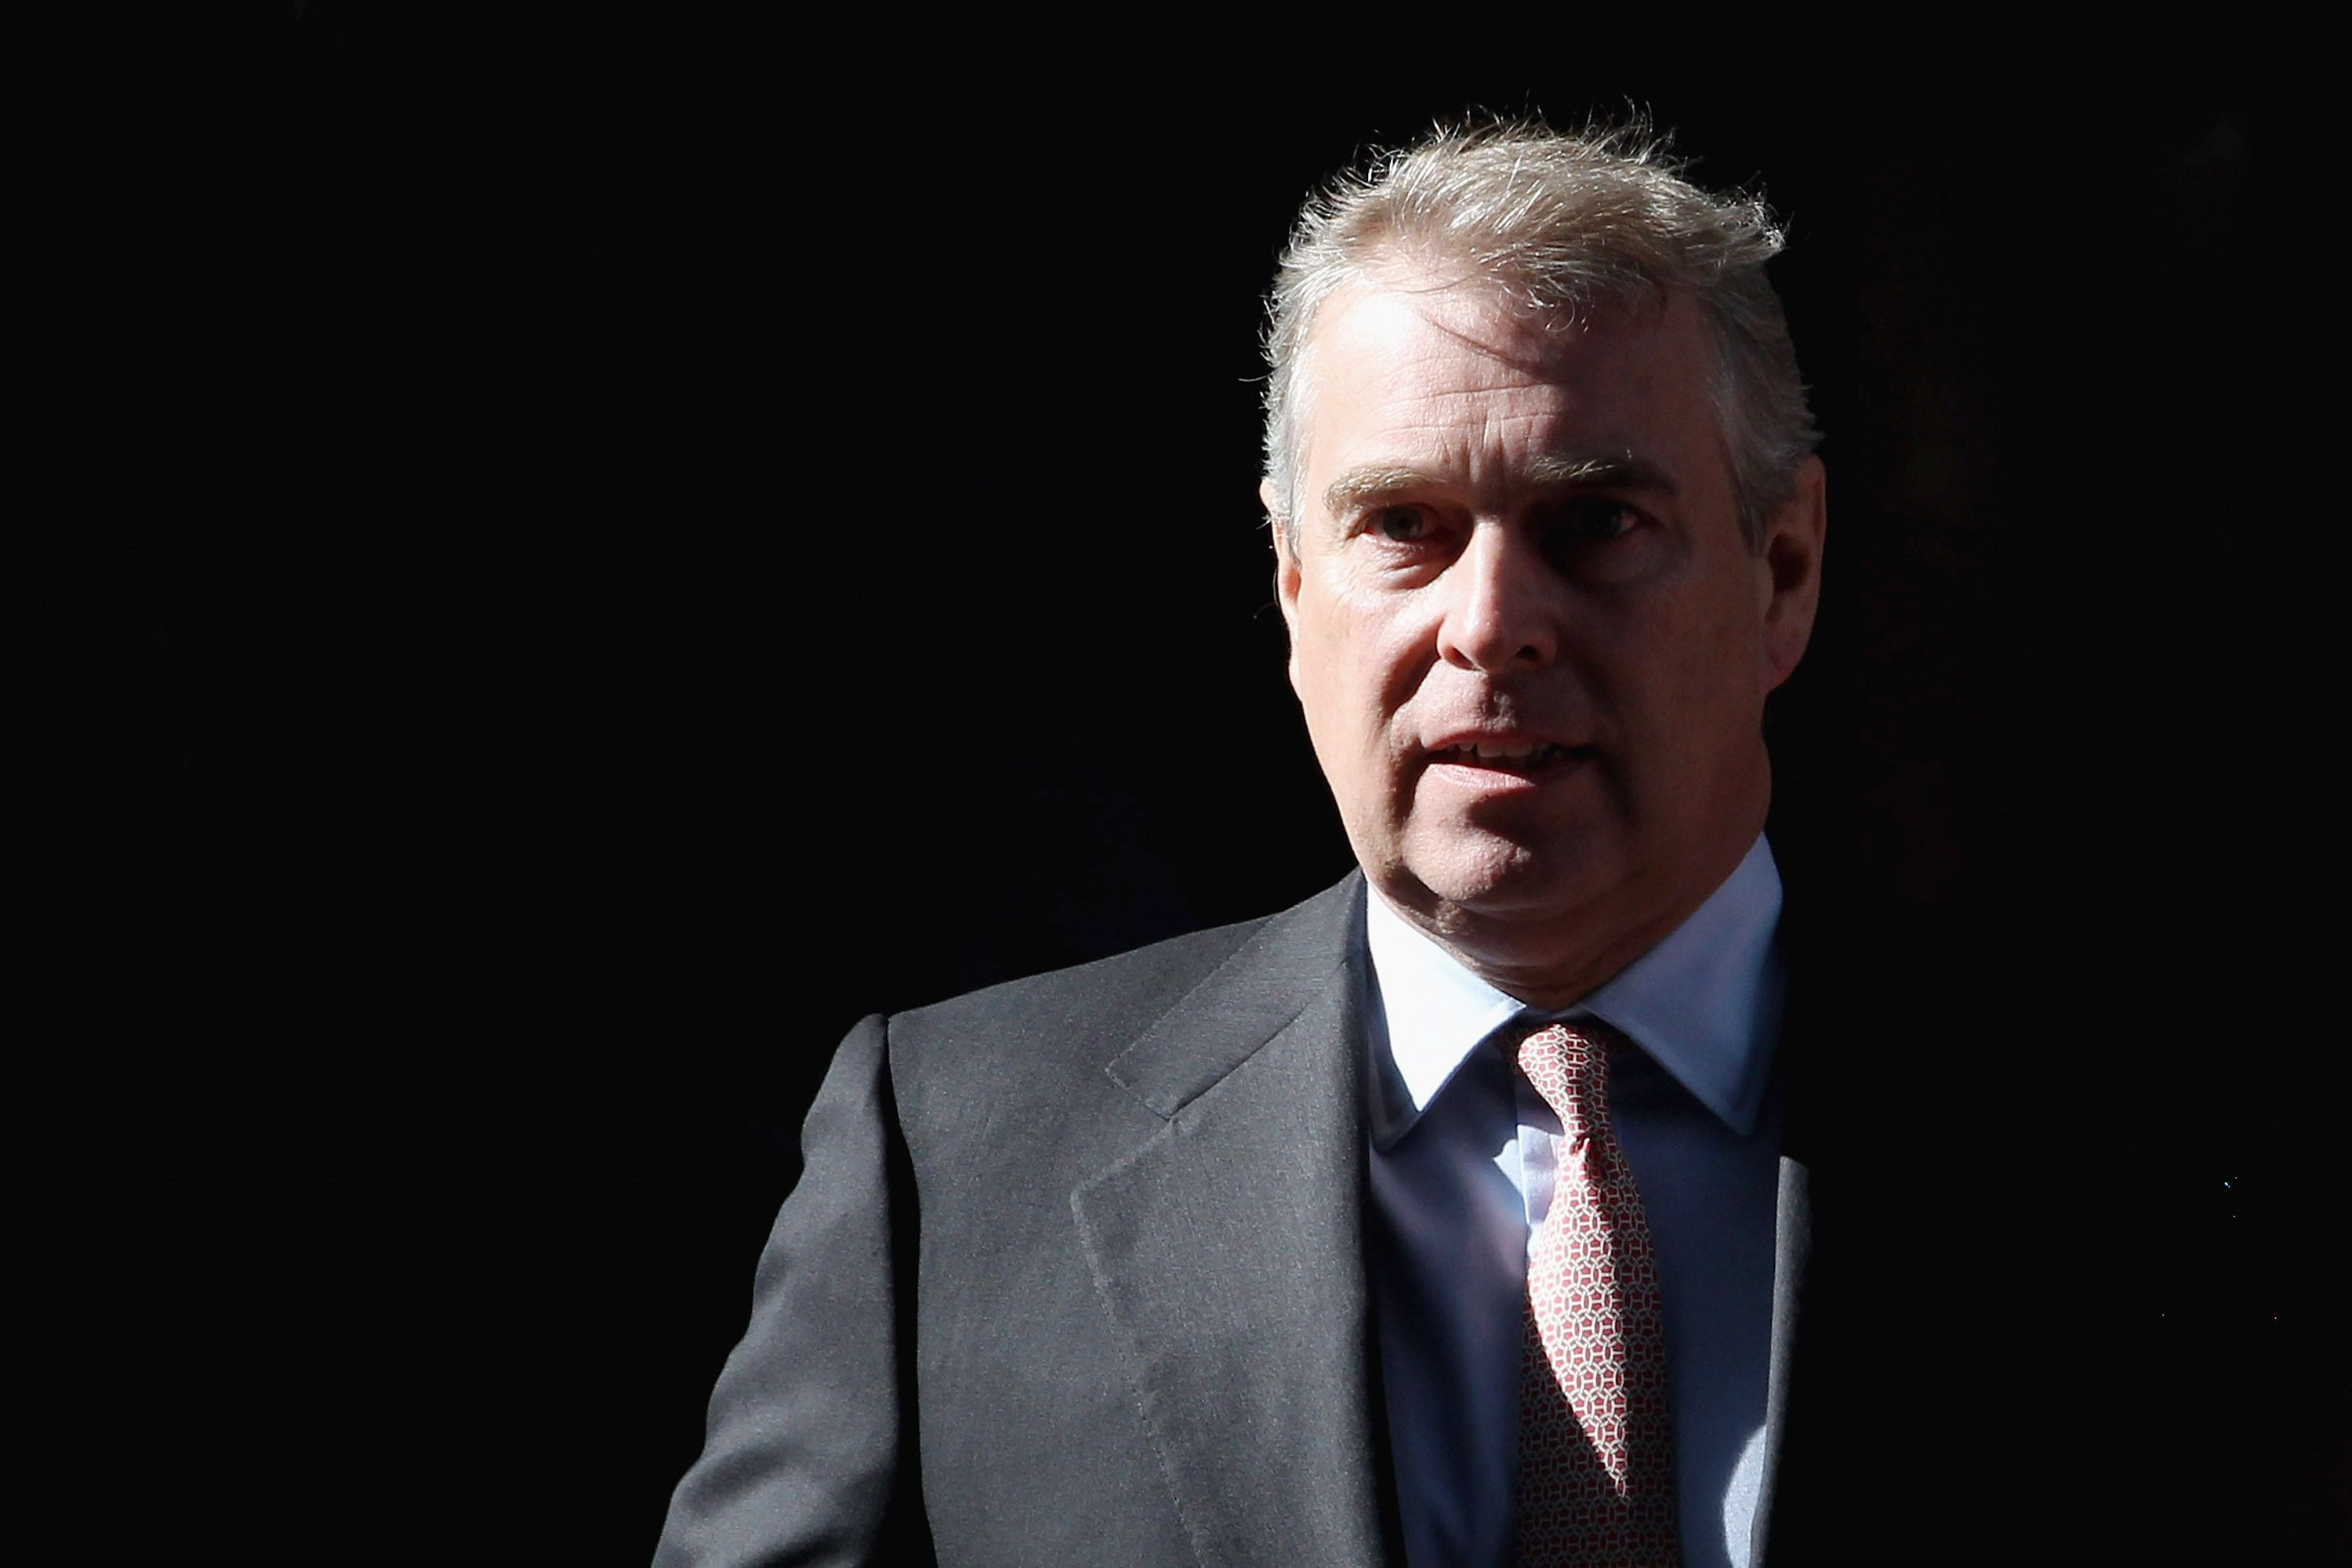 Buckingham Palace Releases Another Statement About Prince Andrew's Friendship With Jeffrey Epstein